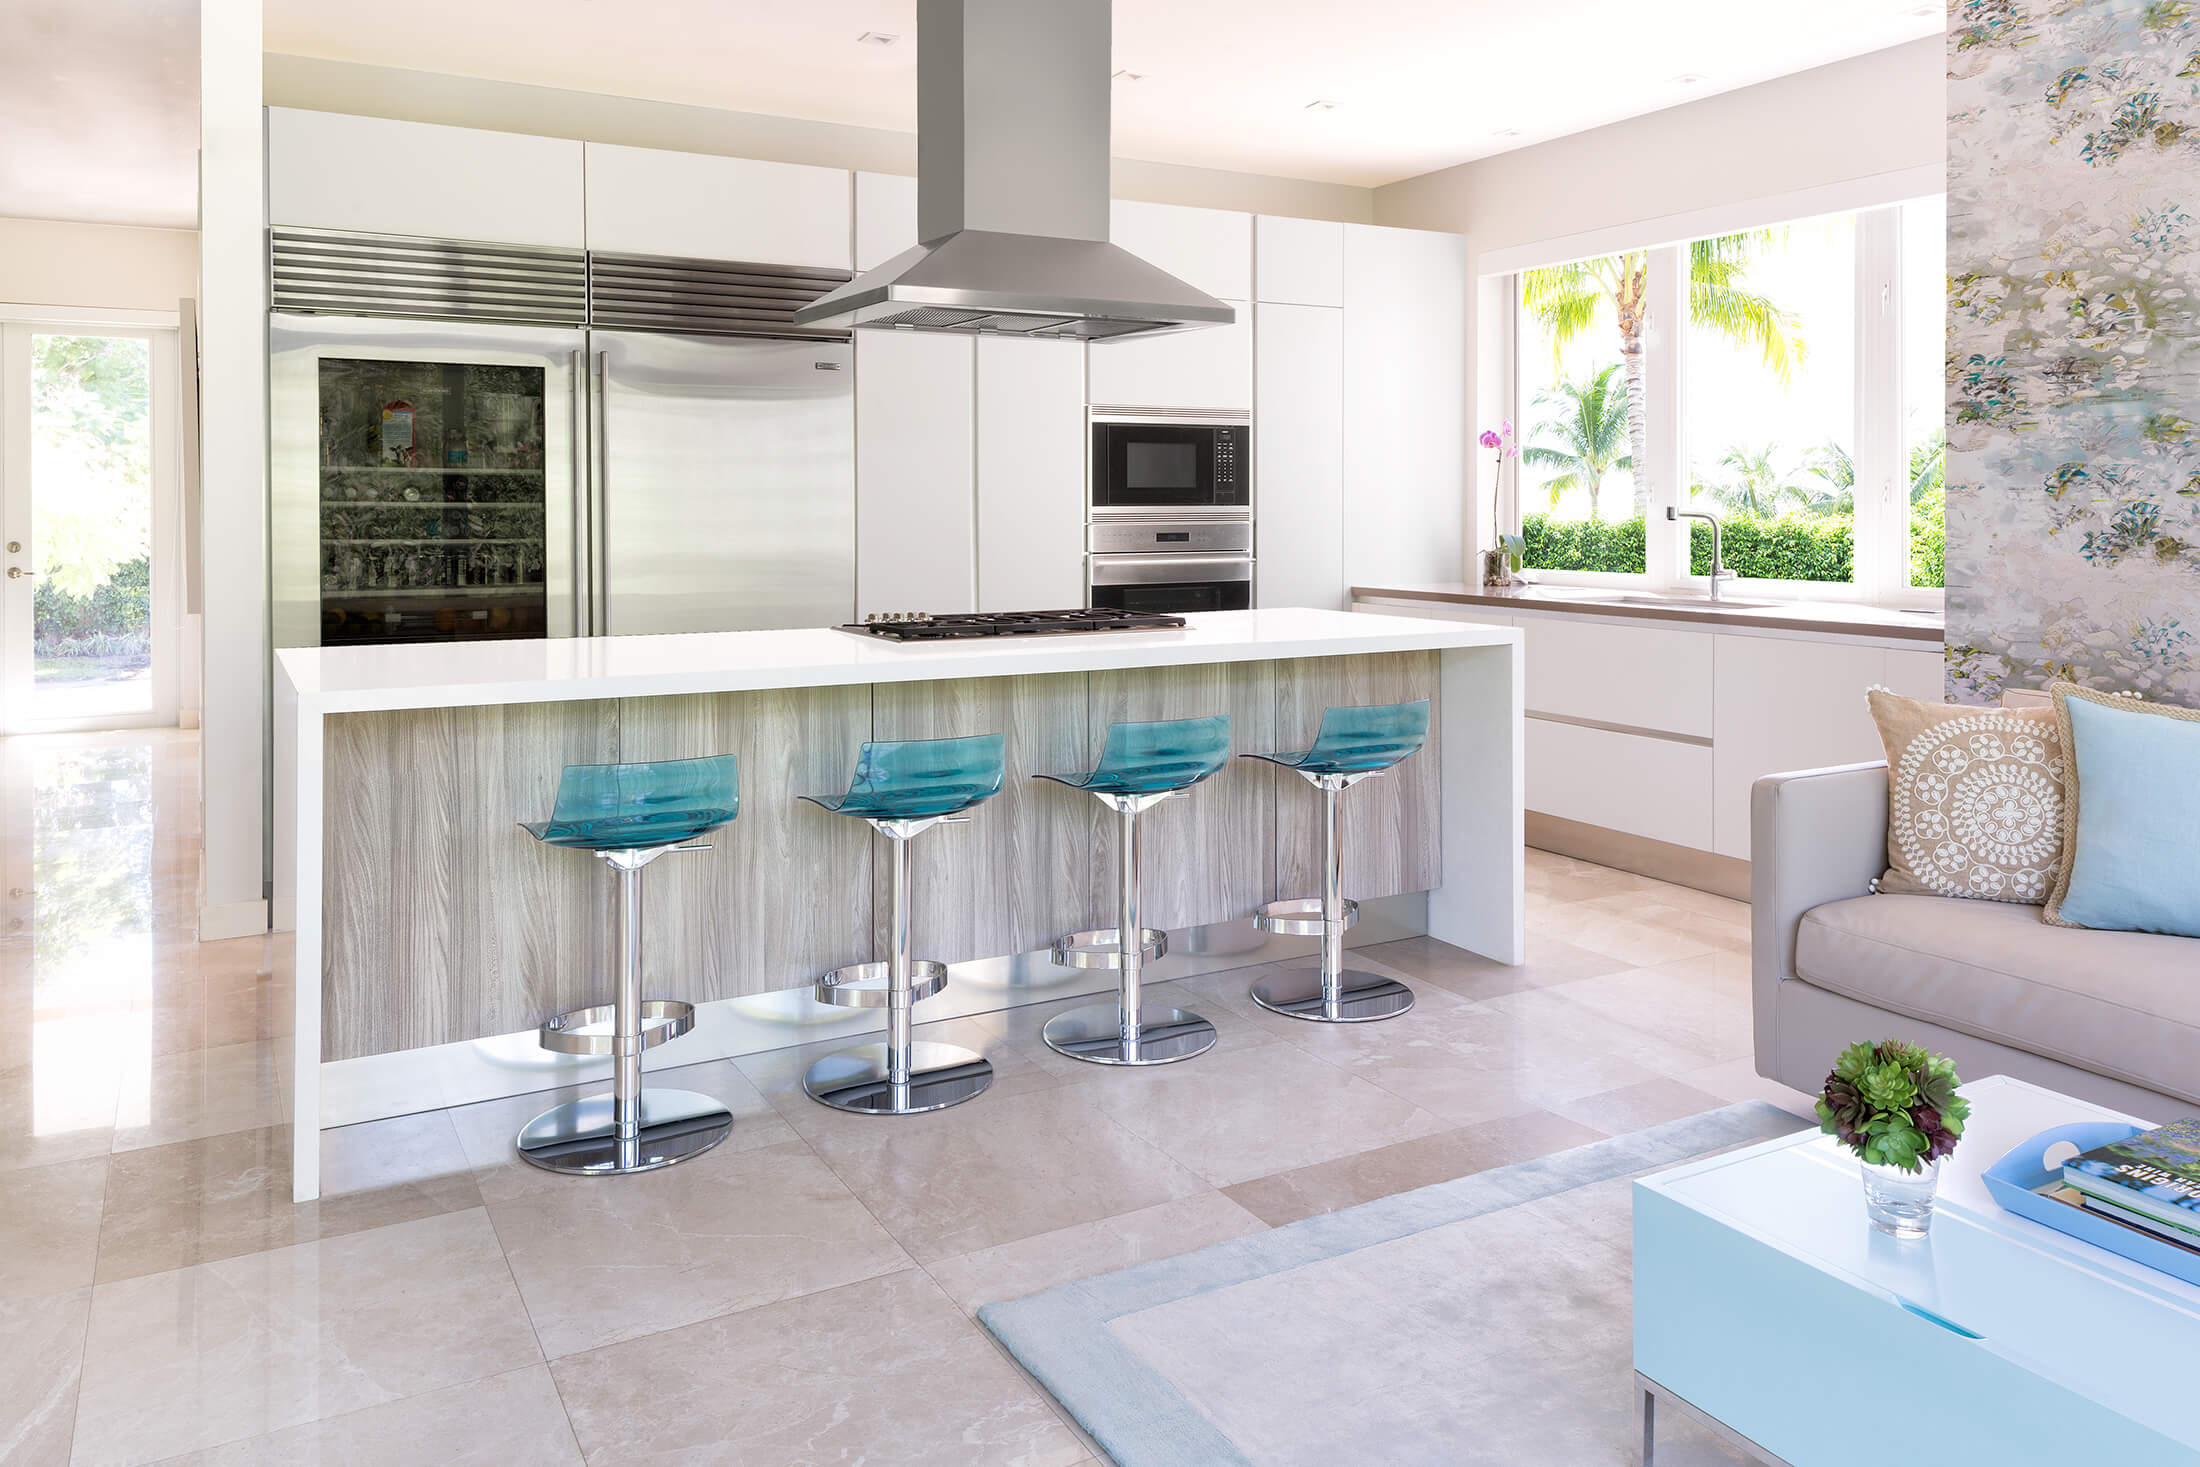 Maite Granda Design Studios - Key Largo Project